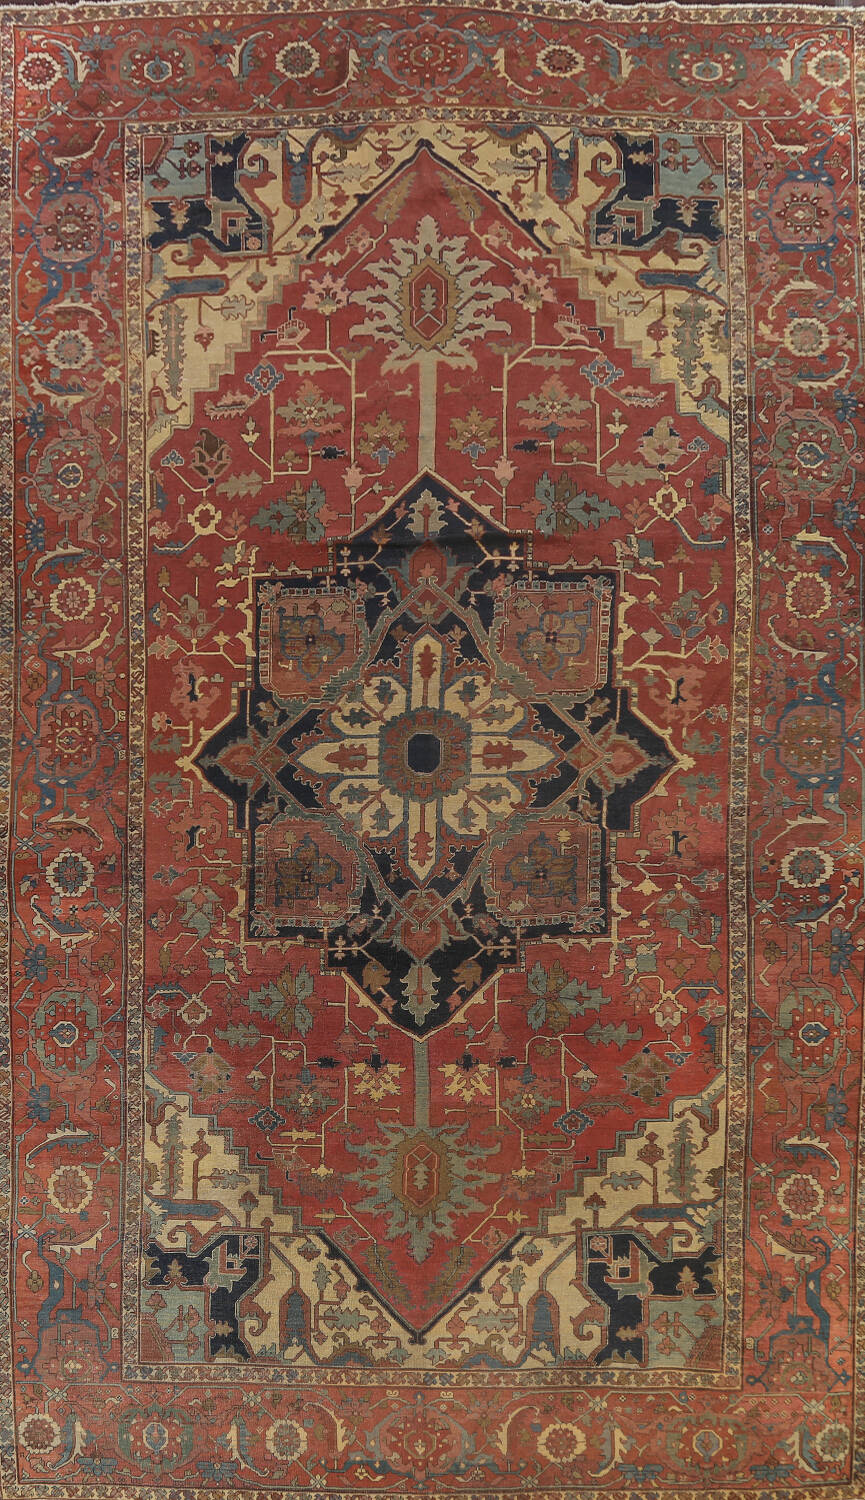 Pre-1900 Antique Vegetable Dye Heriz Serapi Persian Area Rug 12x18 image 1